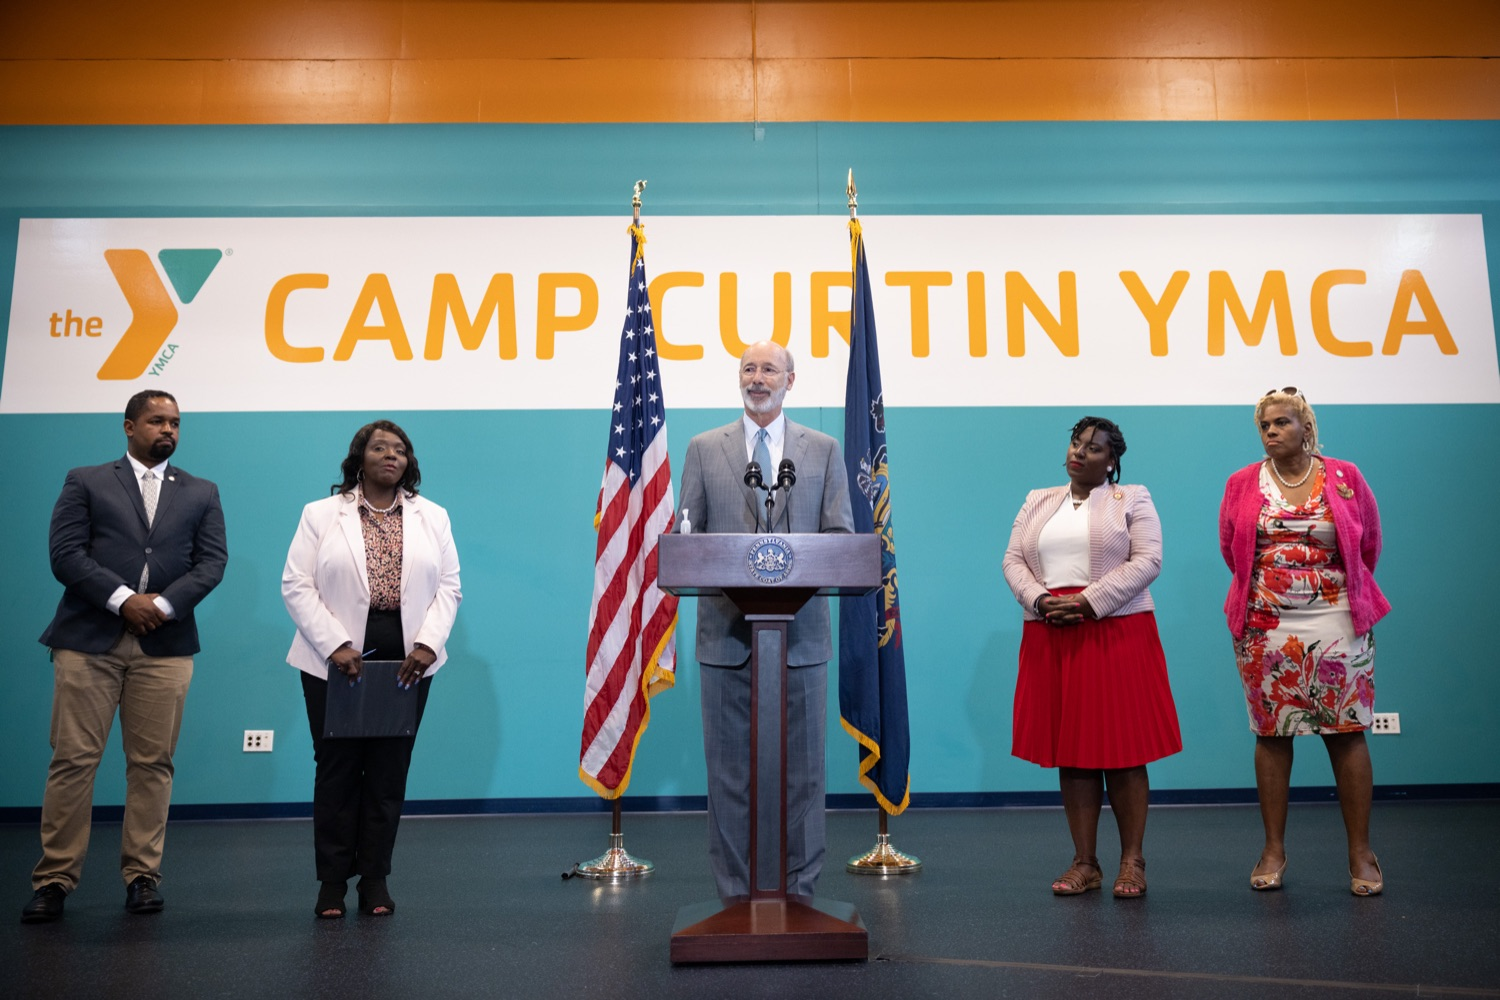 """<a href=""""https://filesource.wostreaming.net/commonwealthofpa/photo/18815_gov_voterRights_dz_001.jpg"""" target=""""_blank"""">⇣Download Photo<br></a>Pennsylvania Governor Tom Wolf speaking with the press.  With some politicians spreading lies about our elections to divide us, Governor Tom Wolf today vowed to protect the freedom to vote and oppose legislation that would create barriers to voting and silence the voices of some Pennsylvanians. These are the same lies that led directly to the appalling assault on our U.S. Capitol and our democracy on January 6, and now, just a few short months later, the same people who fomented, encouraged, and joined that mob are again emerging to undermine the fabric of our nation.   Harrisburg, PA  June 9, 2021"""